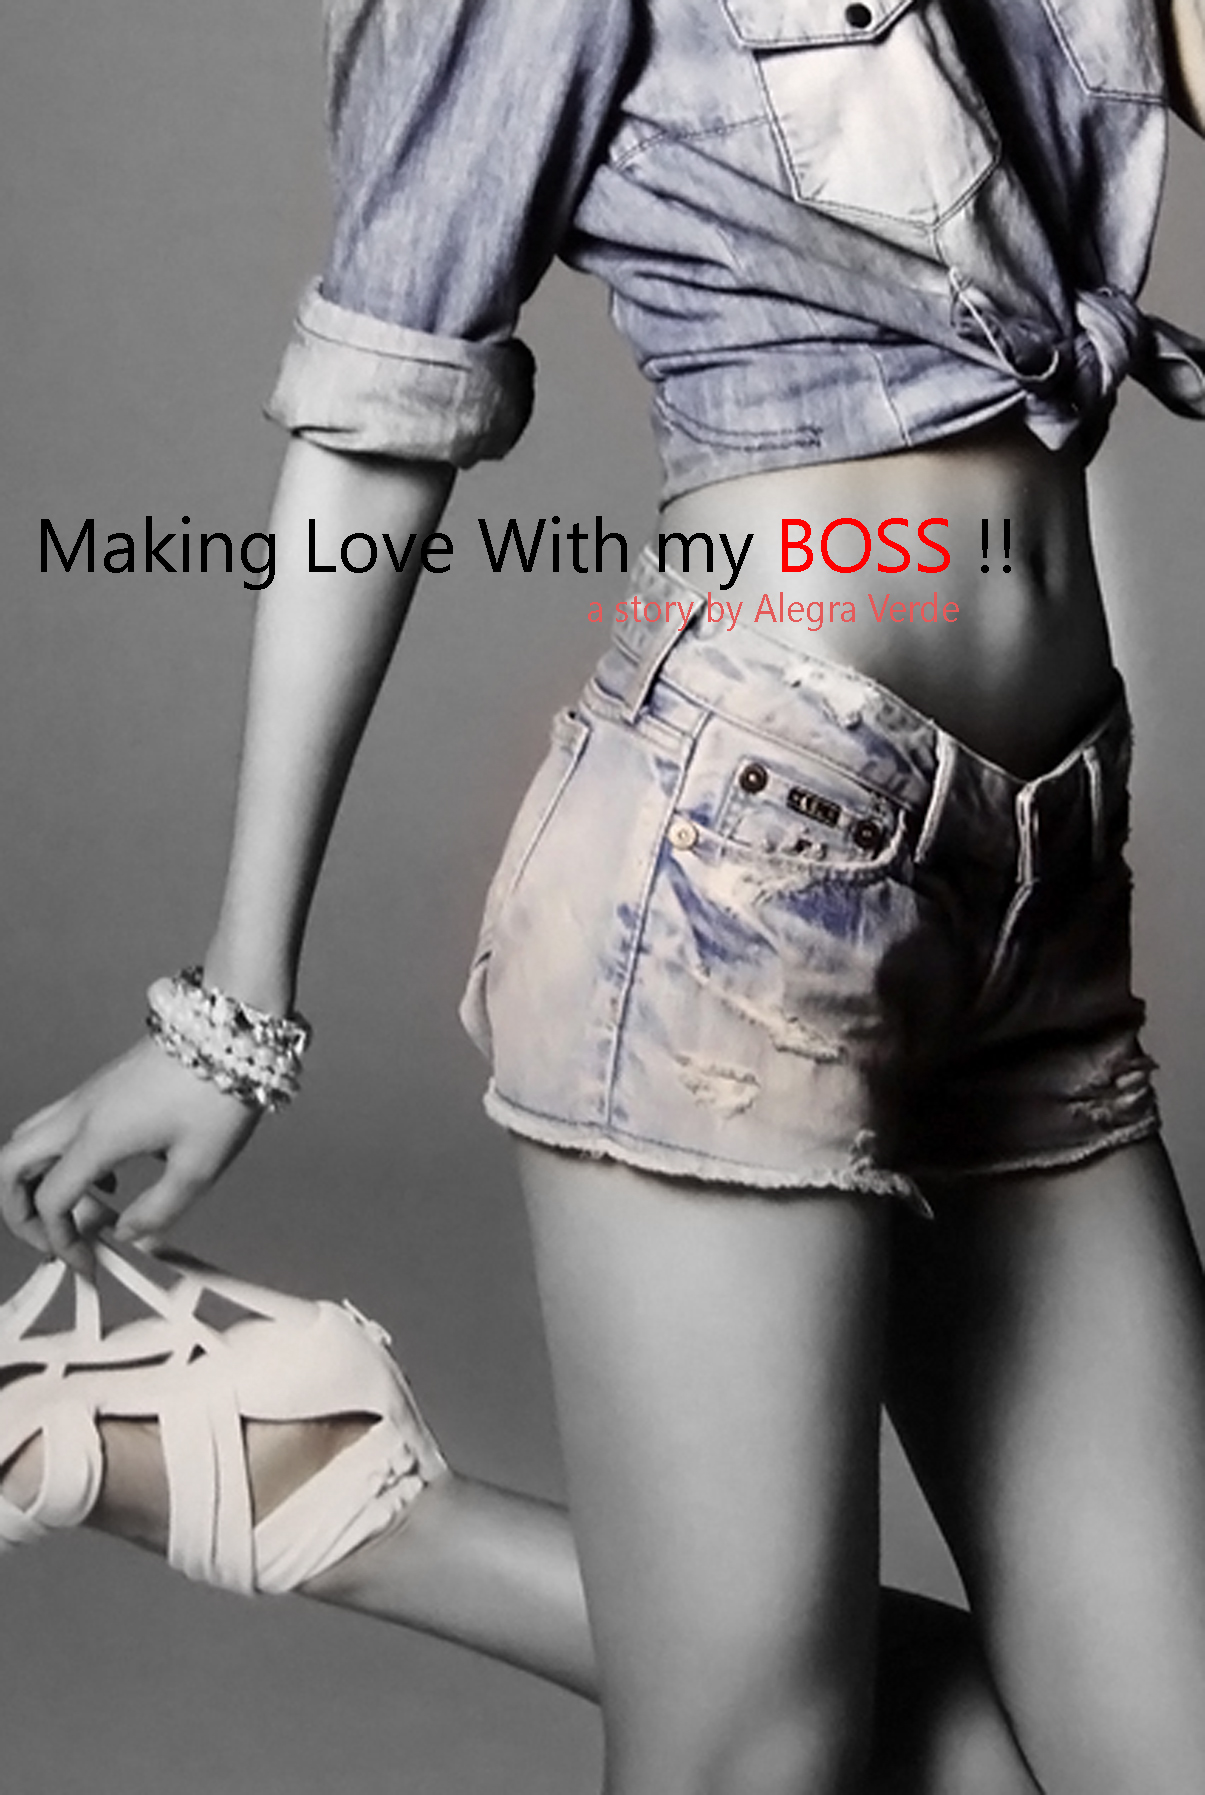 Series] Making Love with My BOSS! (Part 1) – Kyuyoung